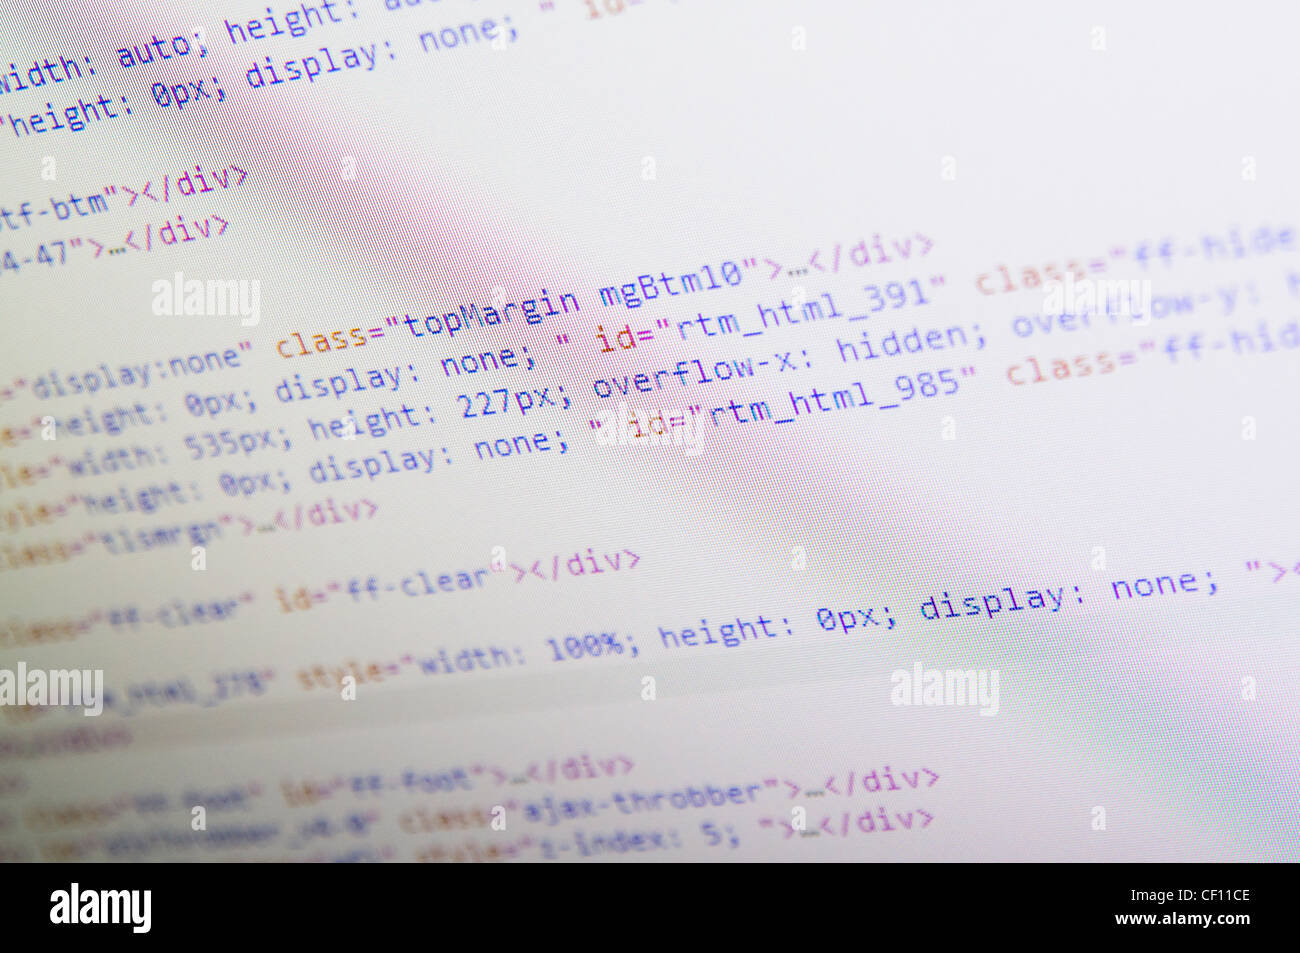 HTML code on a computer screen - Stock Image